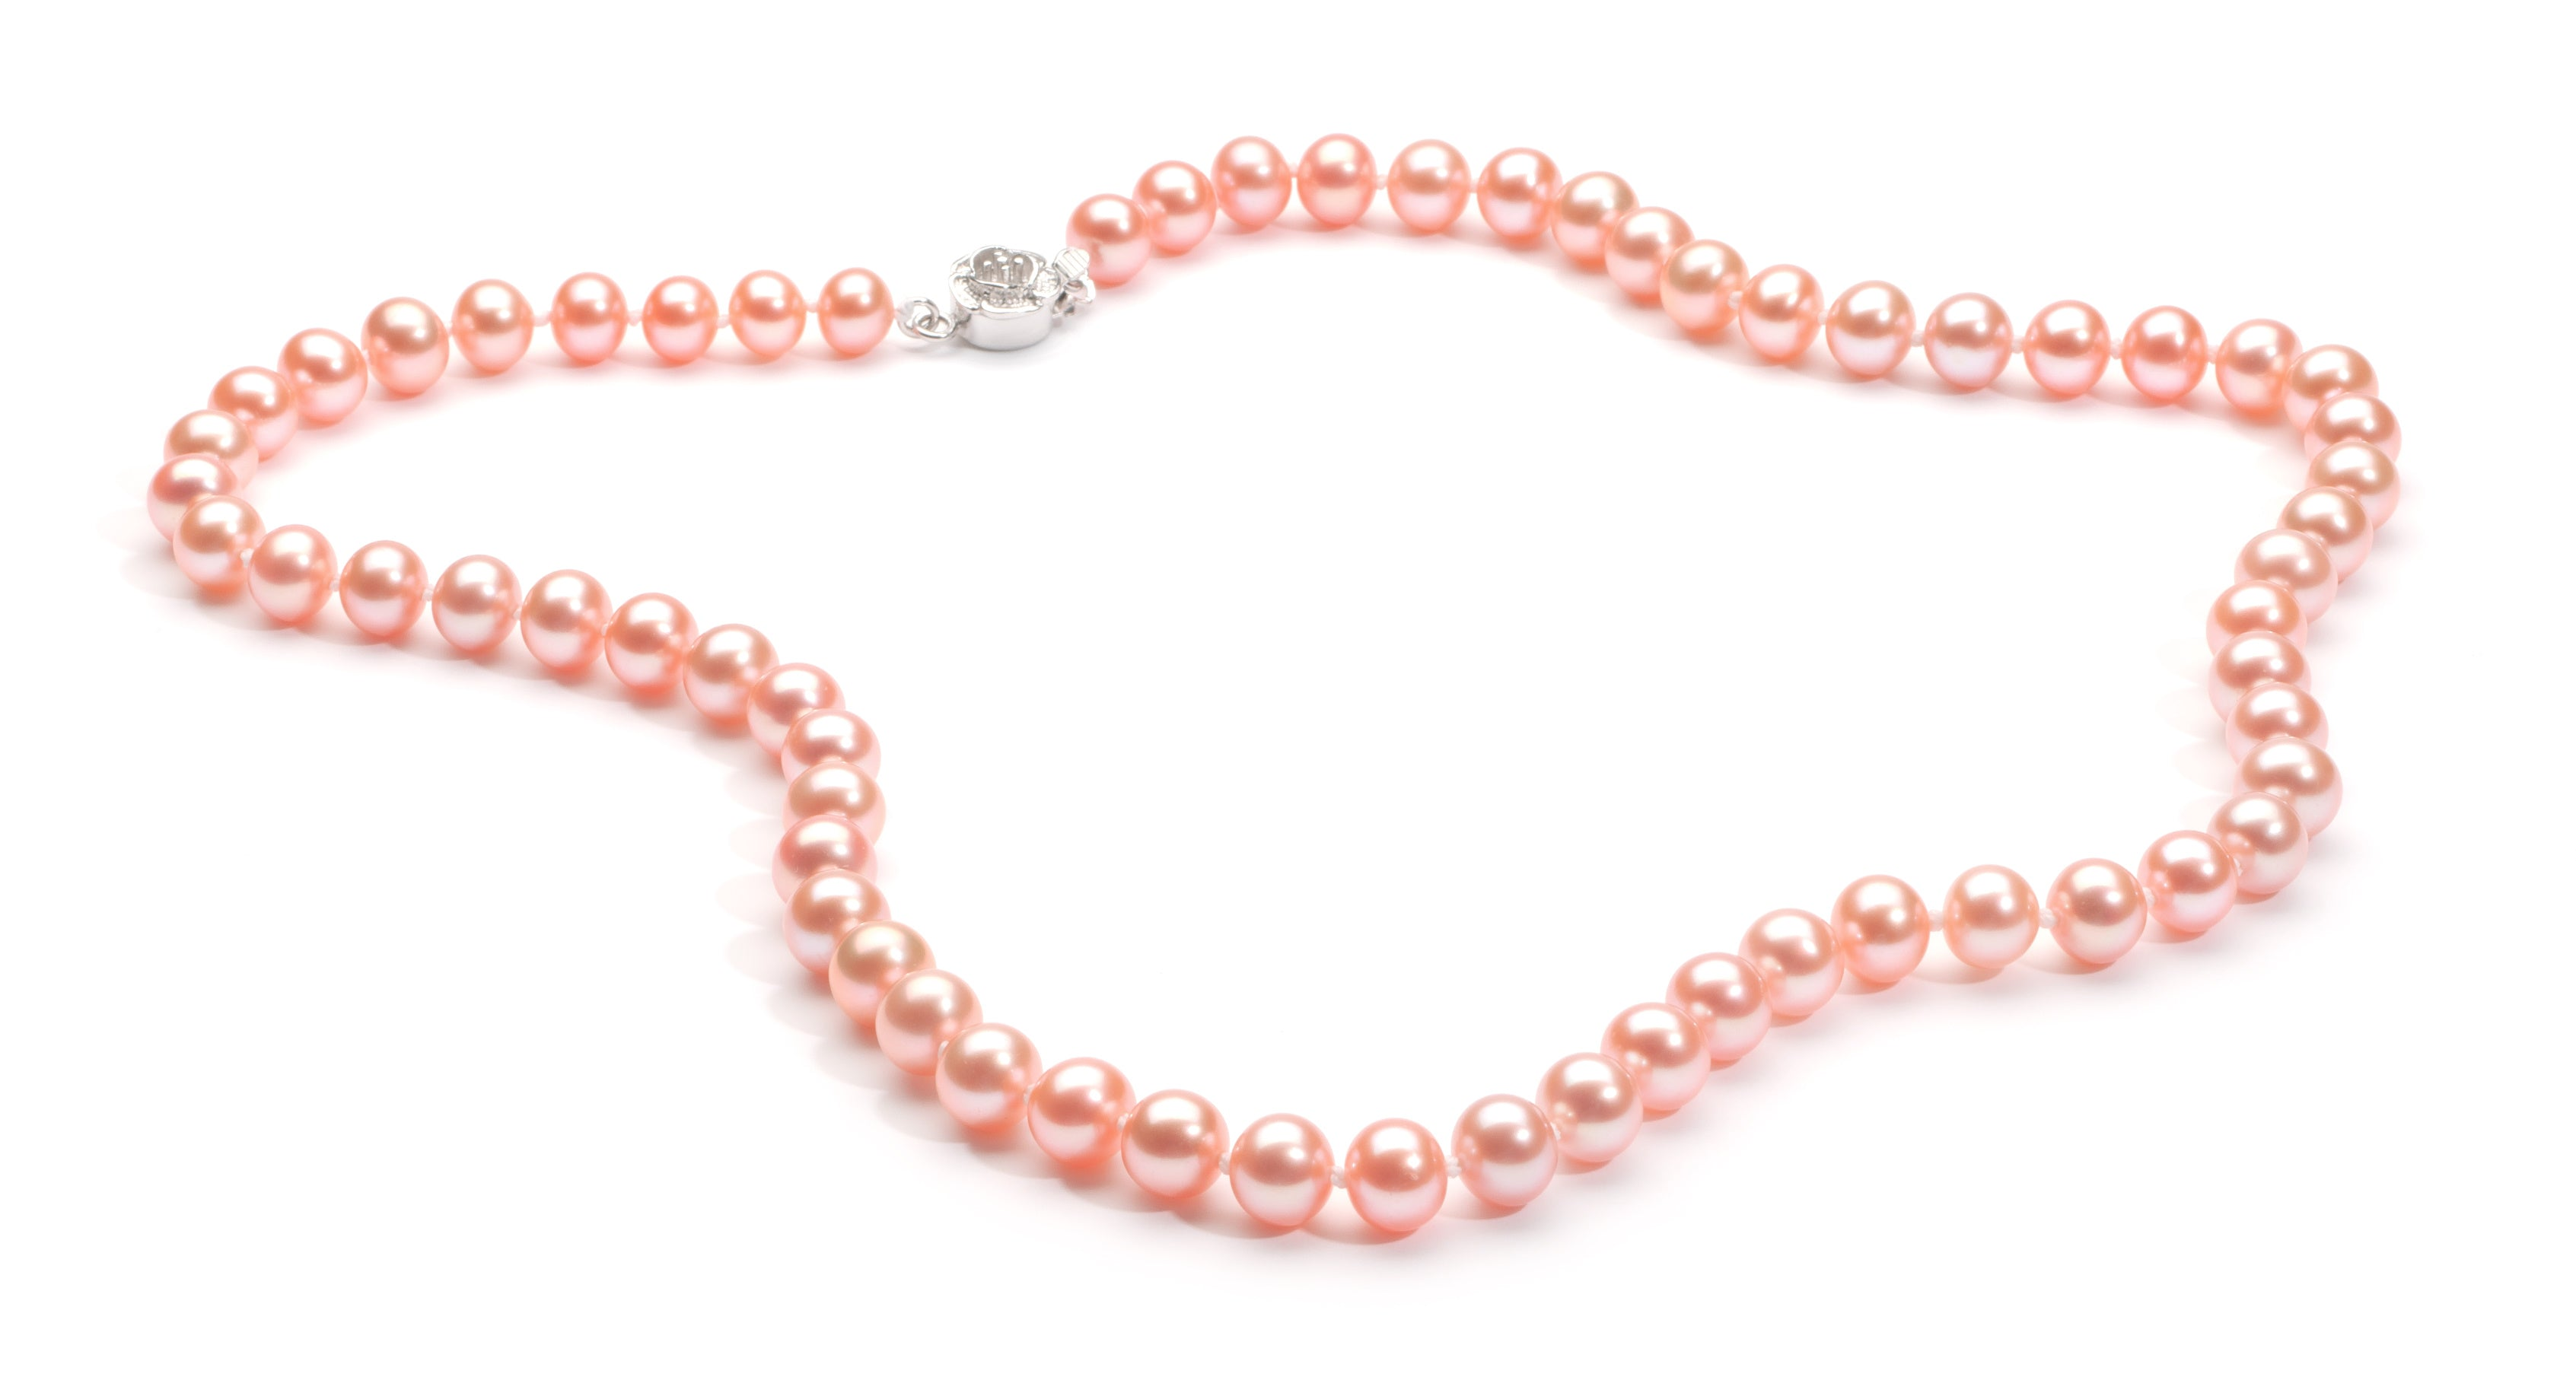 6.0-7.0 mm Pink Freshwater Pearl Necklace